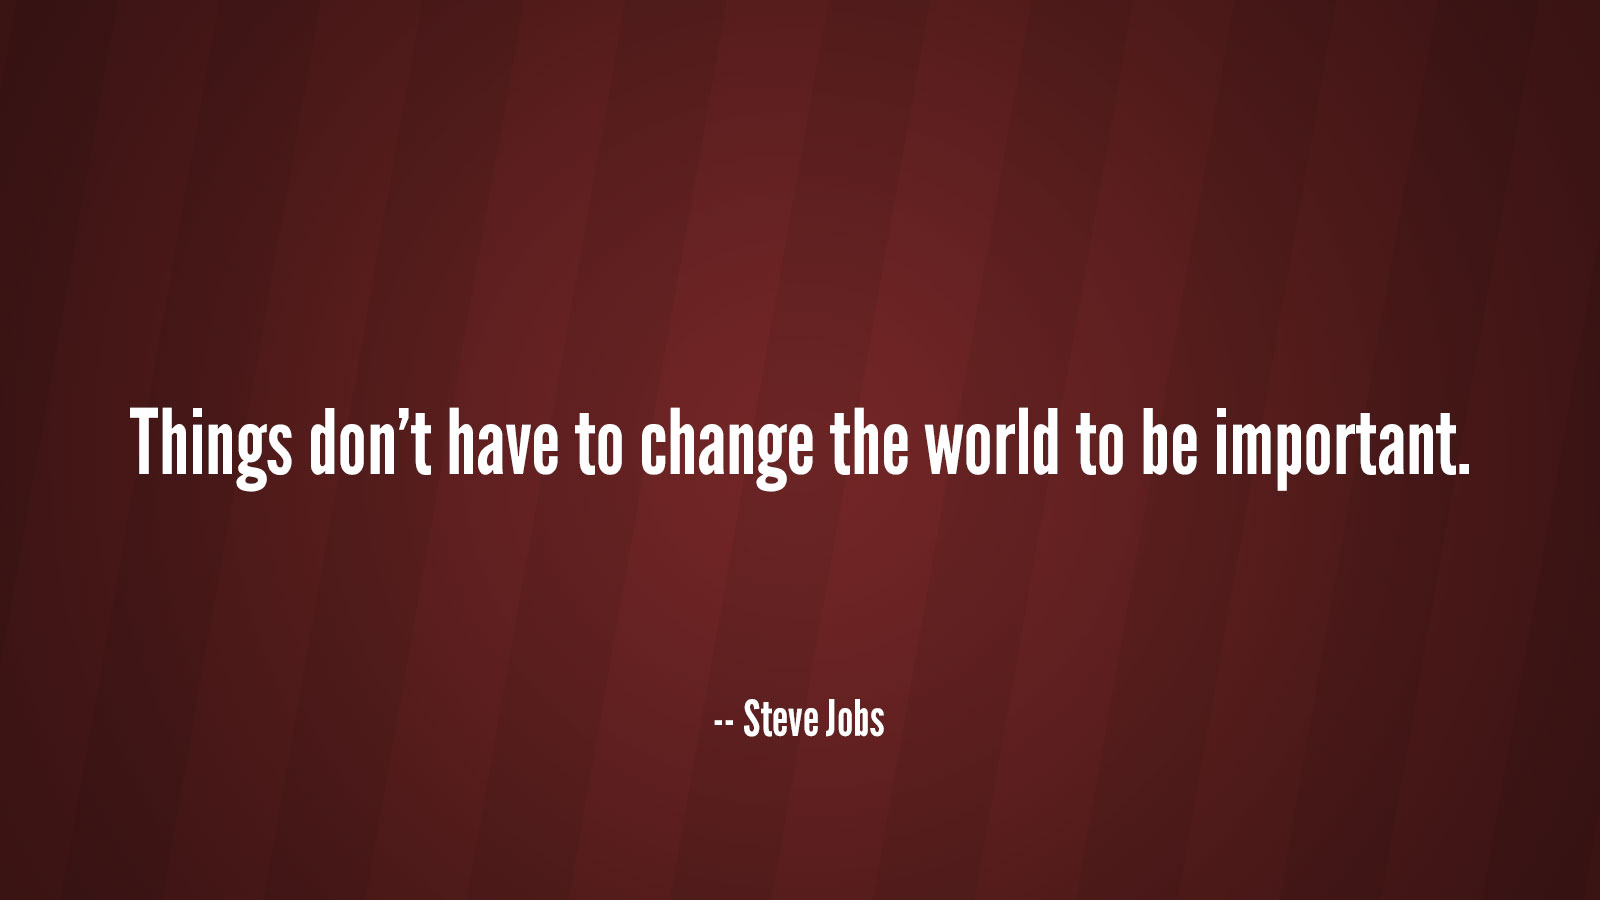 Things don't have to change the world to be important. -- Steve Jobs.